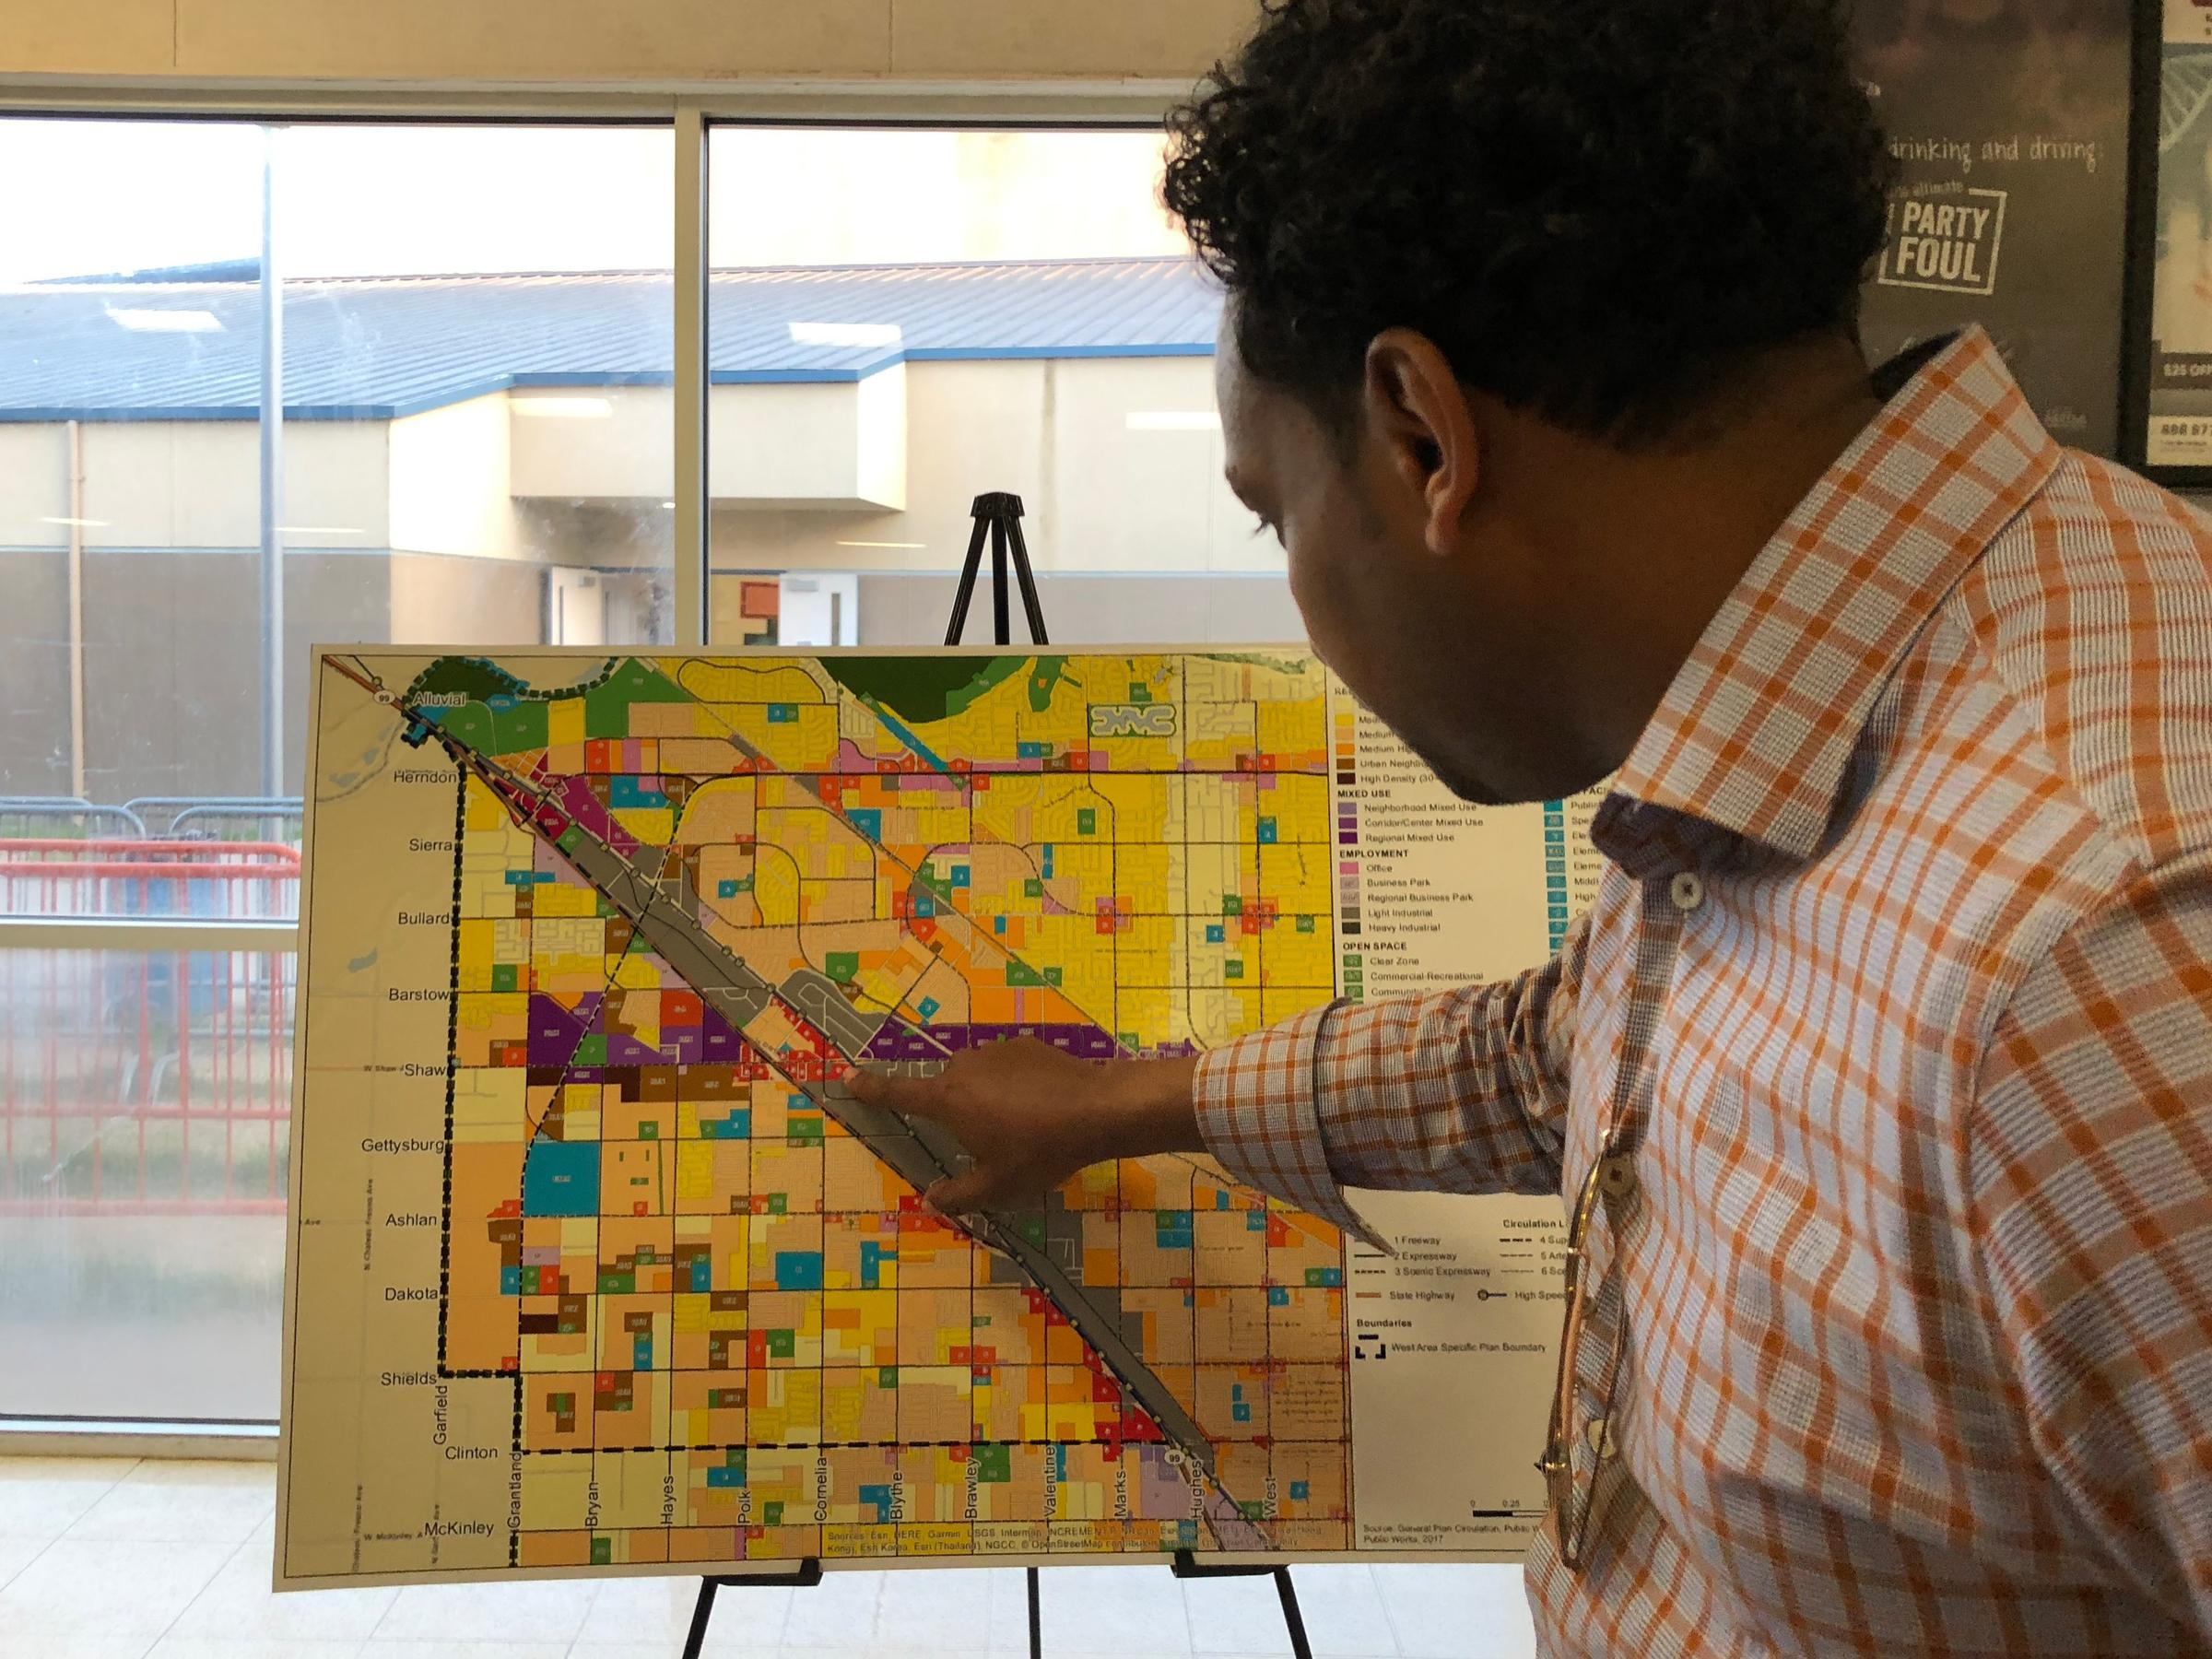 Fresno Residents West Of Highway 99 Look Forward To New Plan, Fewer ...